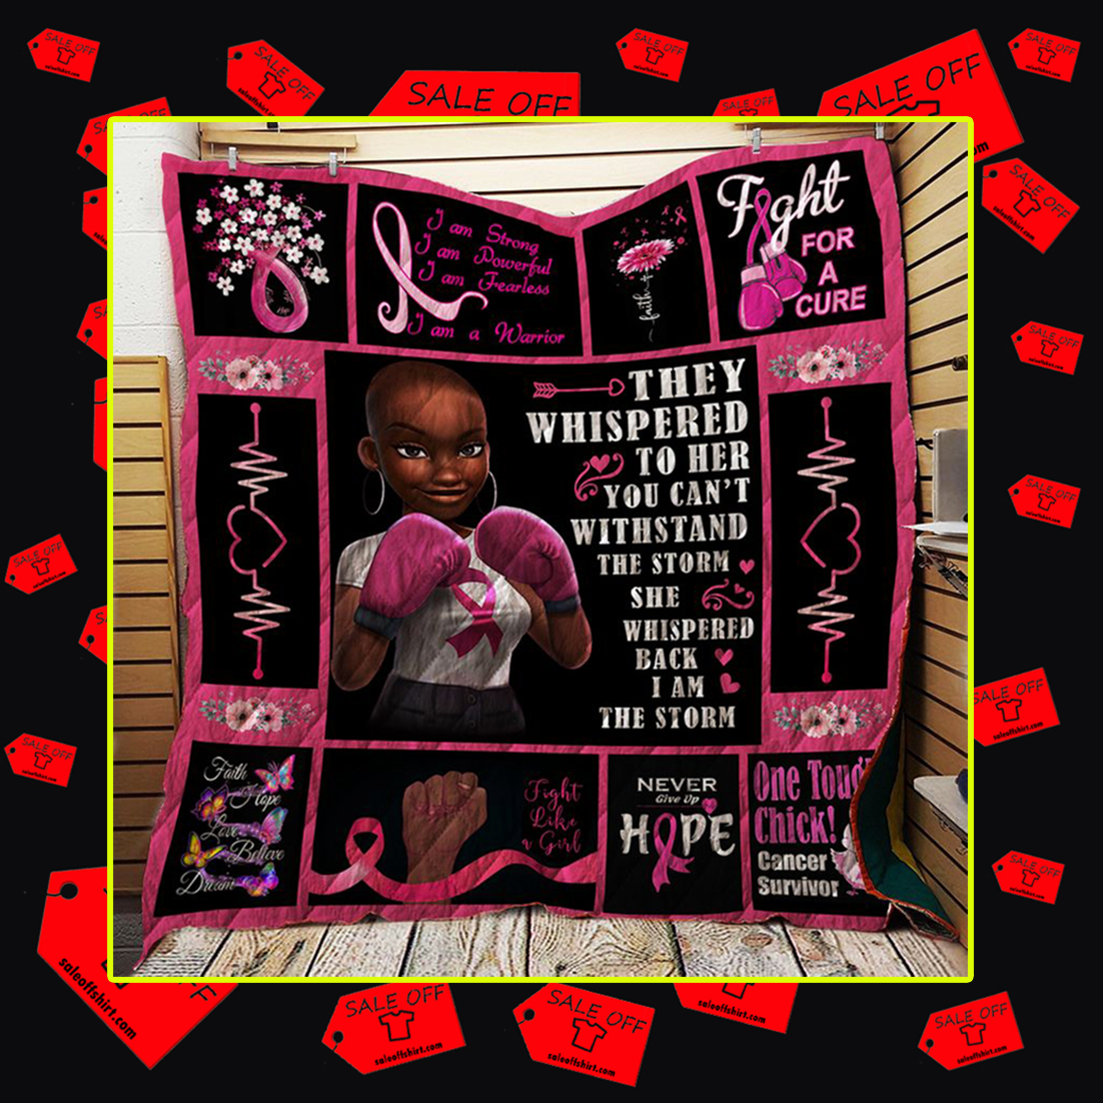 Breast cancer black girl they whispered to her you can't withstand the storm quilt blanket - twin (60x70 inches)